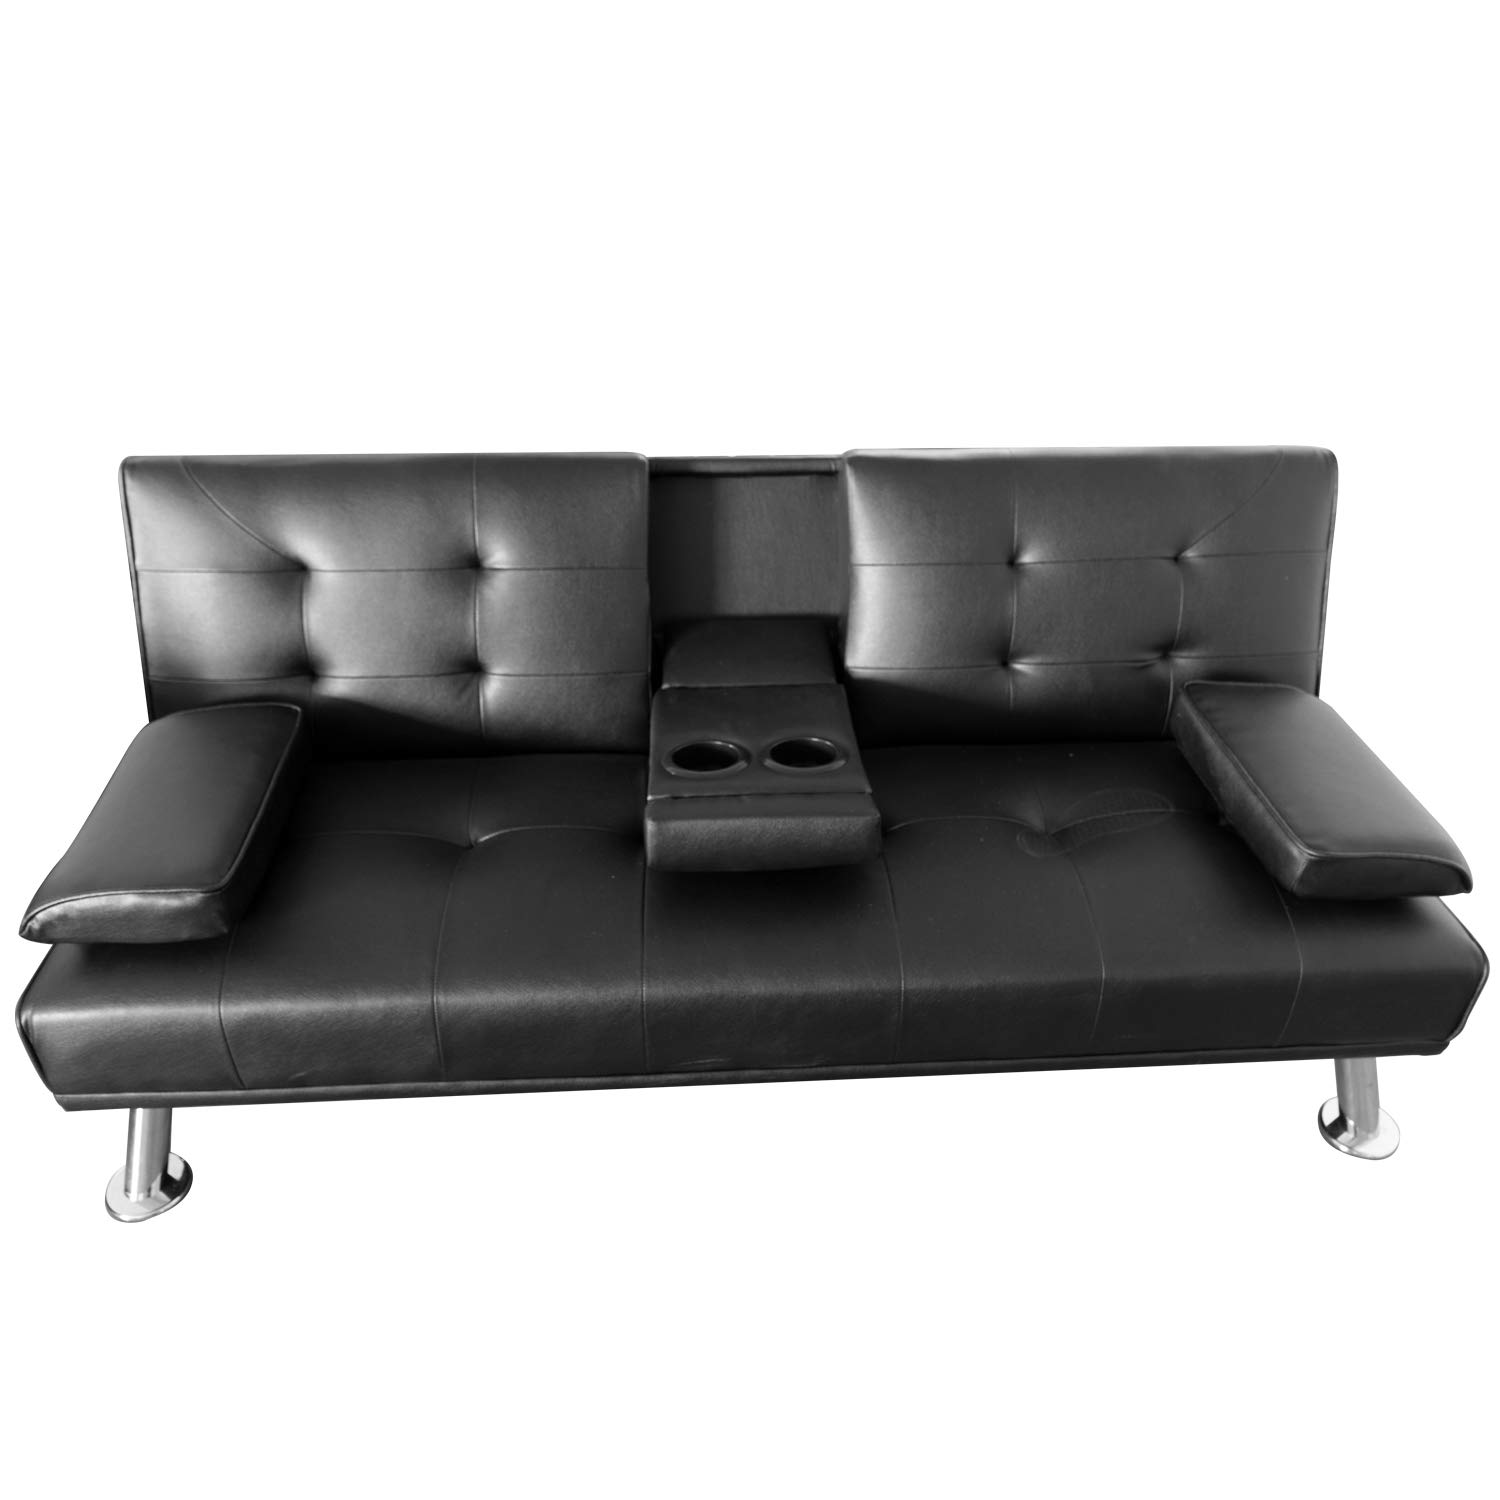 - Flamaker Convertible Futon Sofa Bed Modern Faux Leather Couch